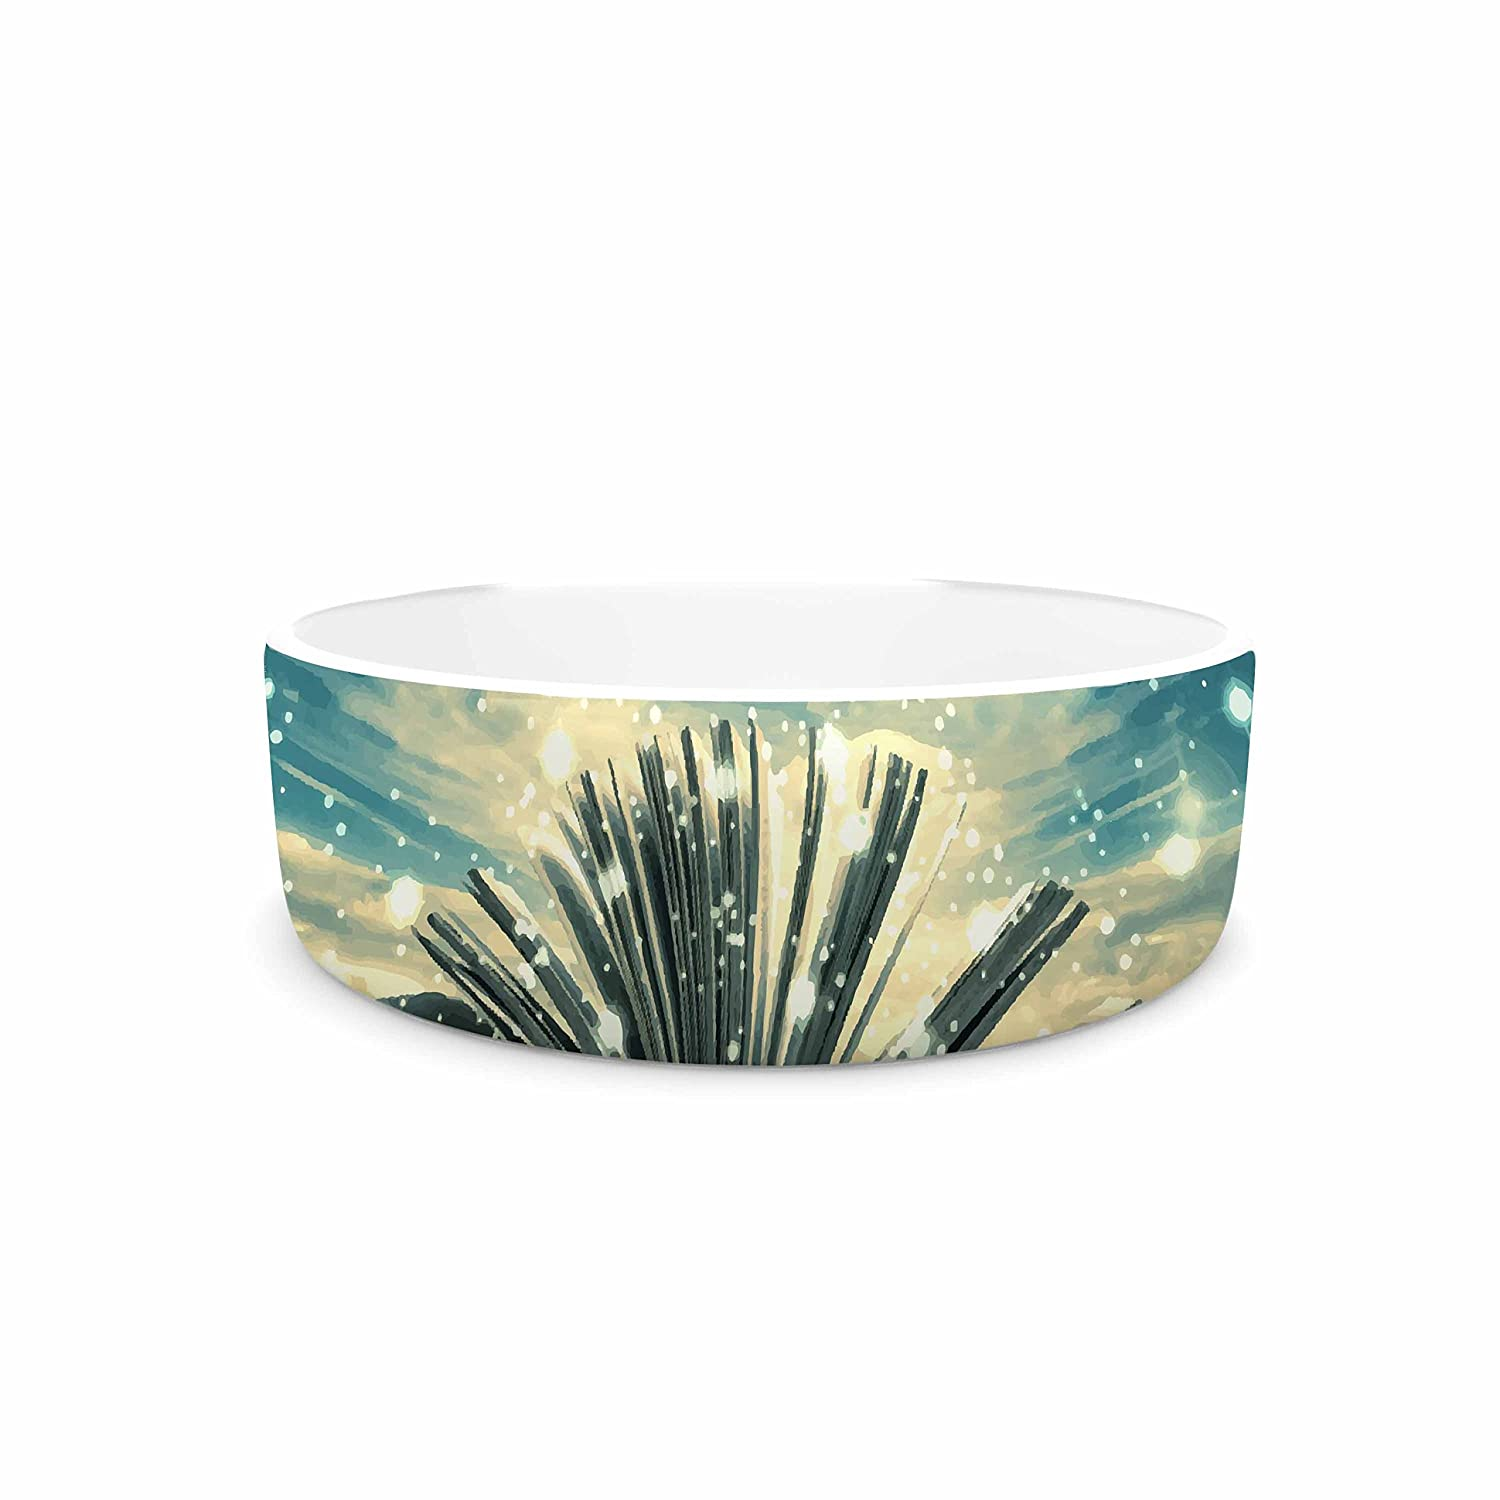 4.75\ KESS InHouse 888 Design The Knowledge Keeper  bluee Fantasy Pet Bowl, 4.75